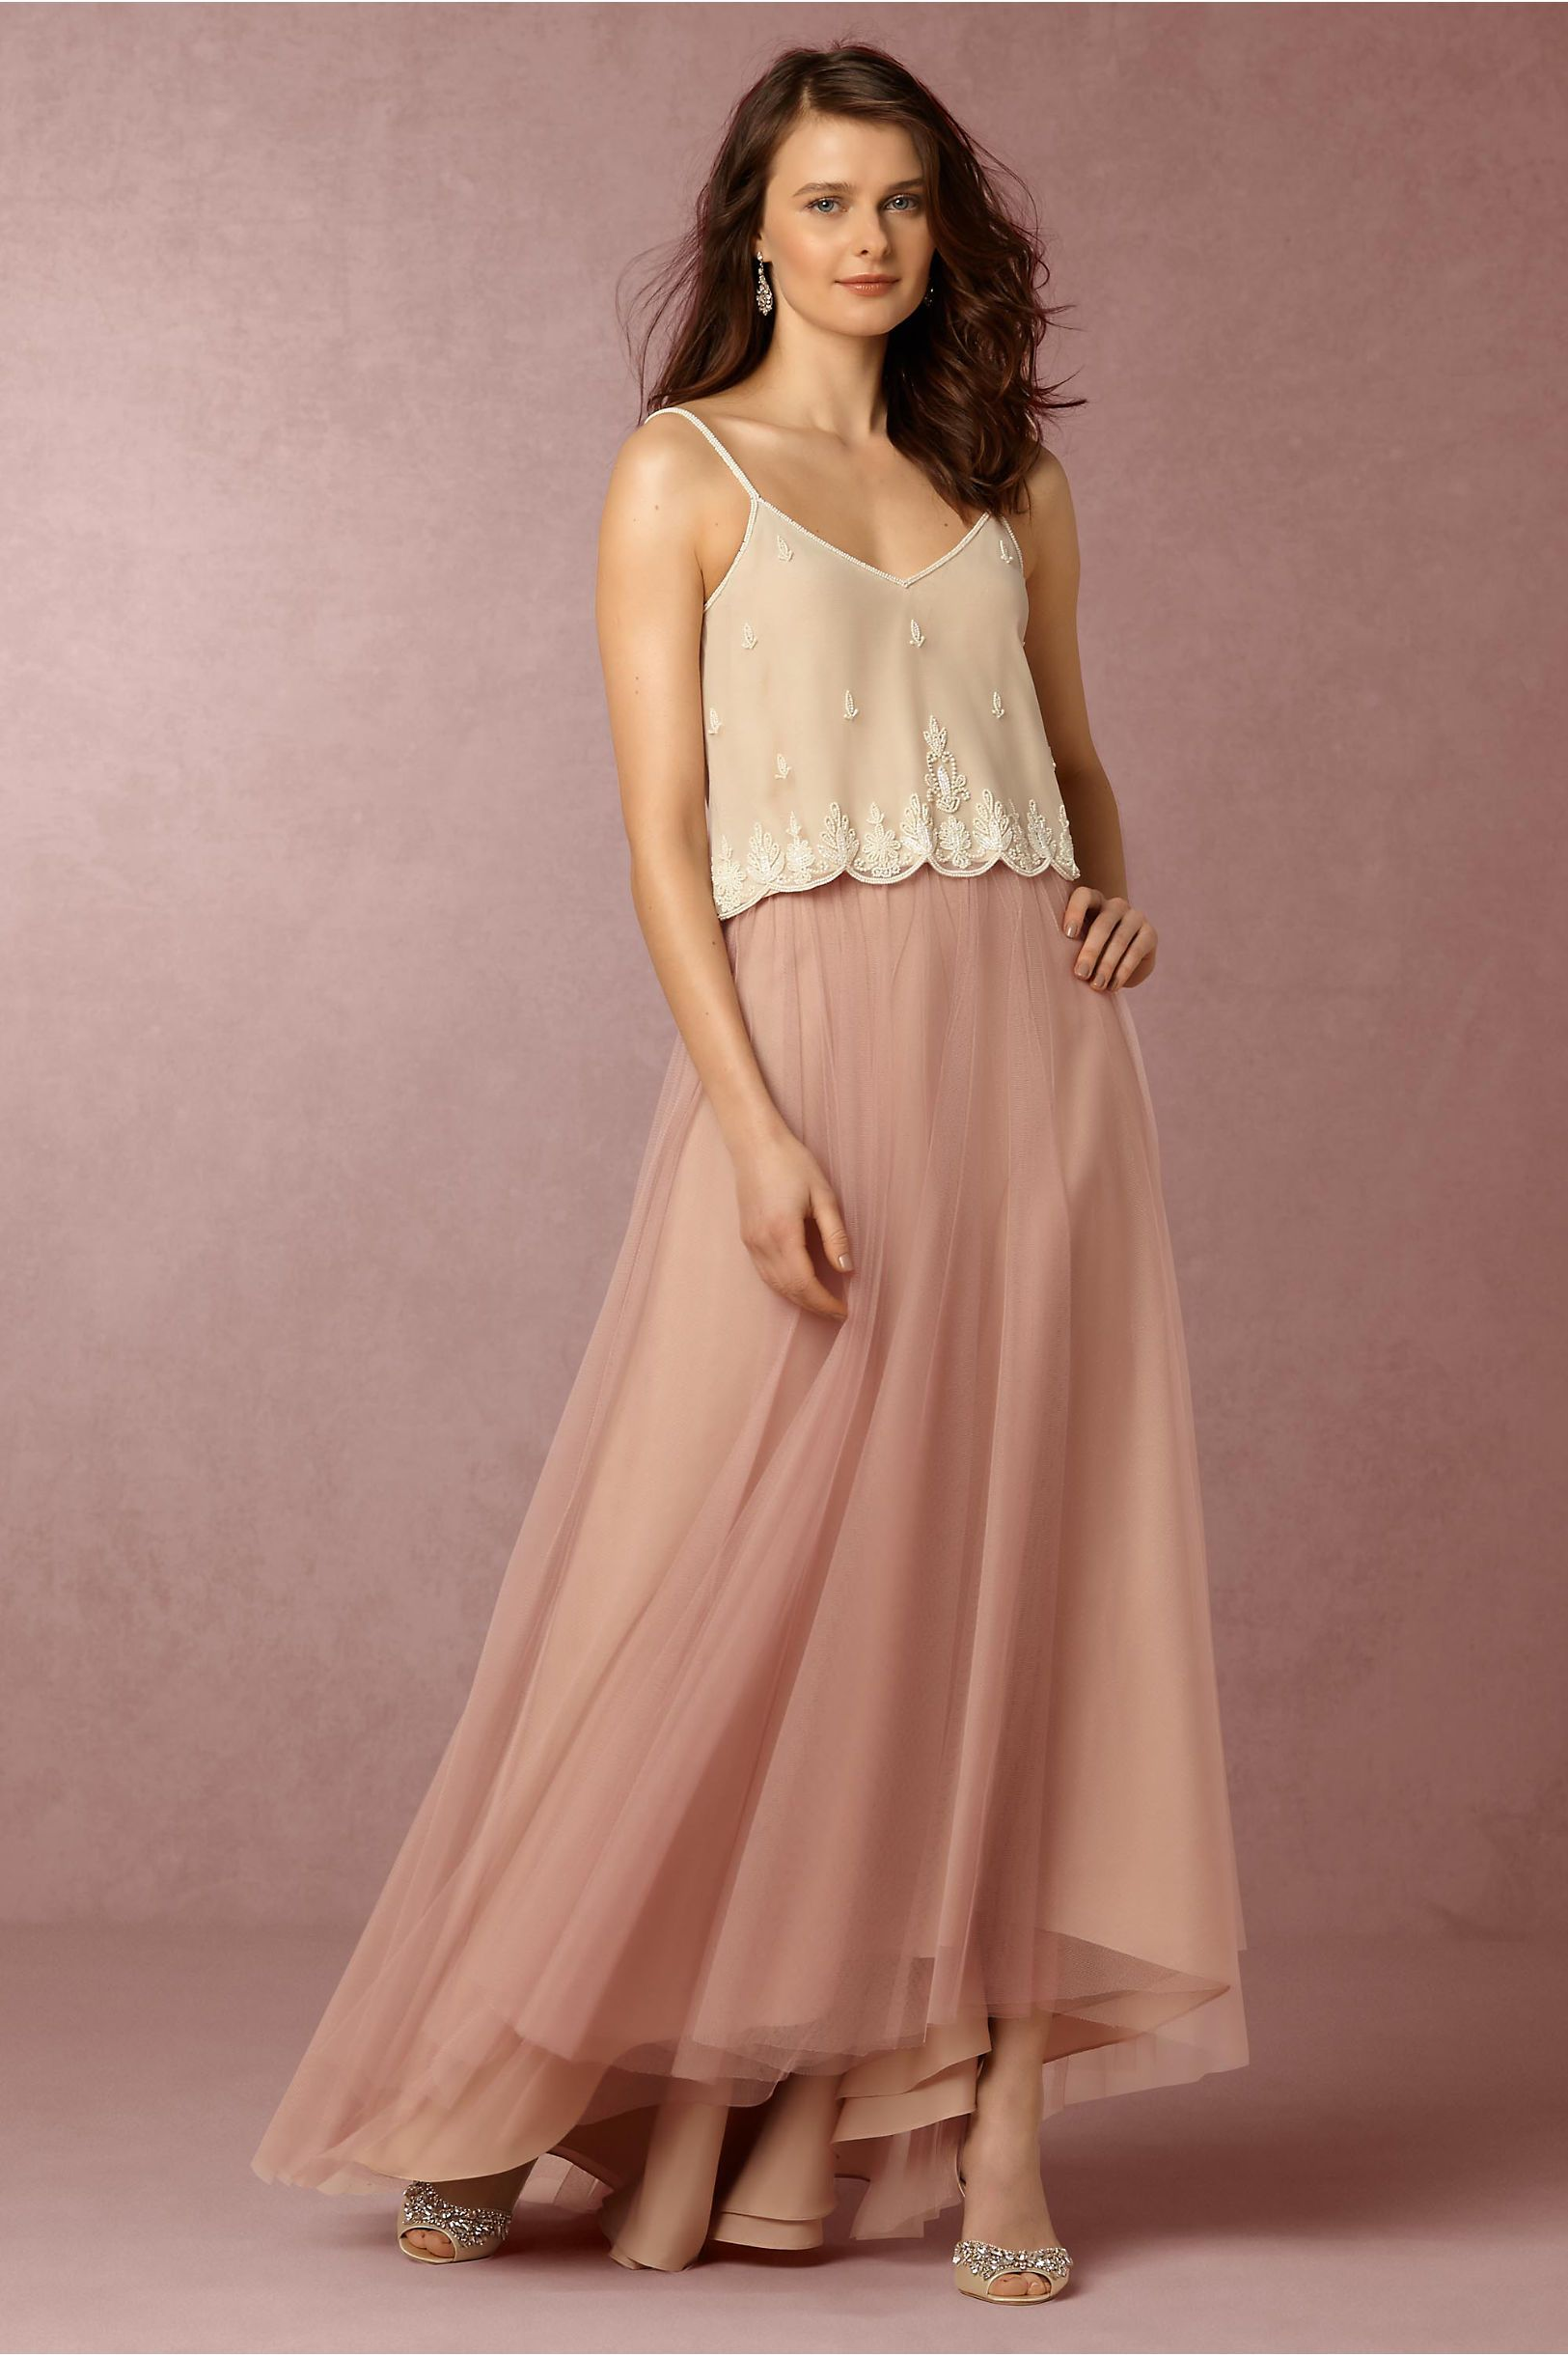 Bhldn carrie top petal skirt in bridesmaids bridesmaid dresses at shop unique bridesmaids dresses at bhldn browse different bridesmaid dress colors and lengths with convertible styles in colors and ways to wear ombrellifo Image collections